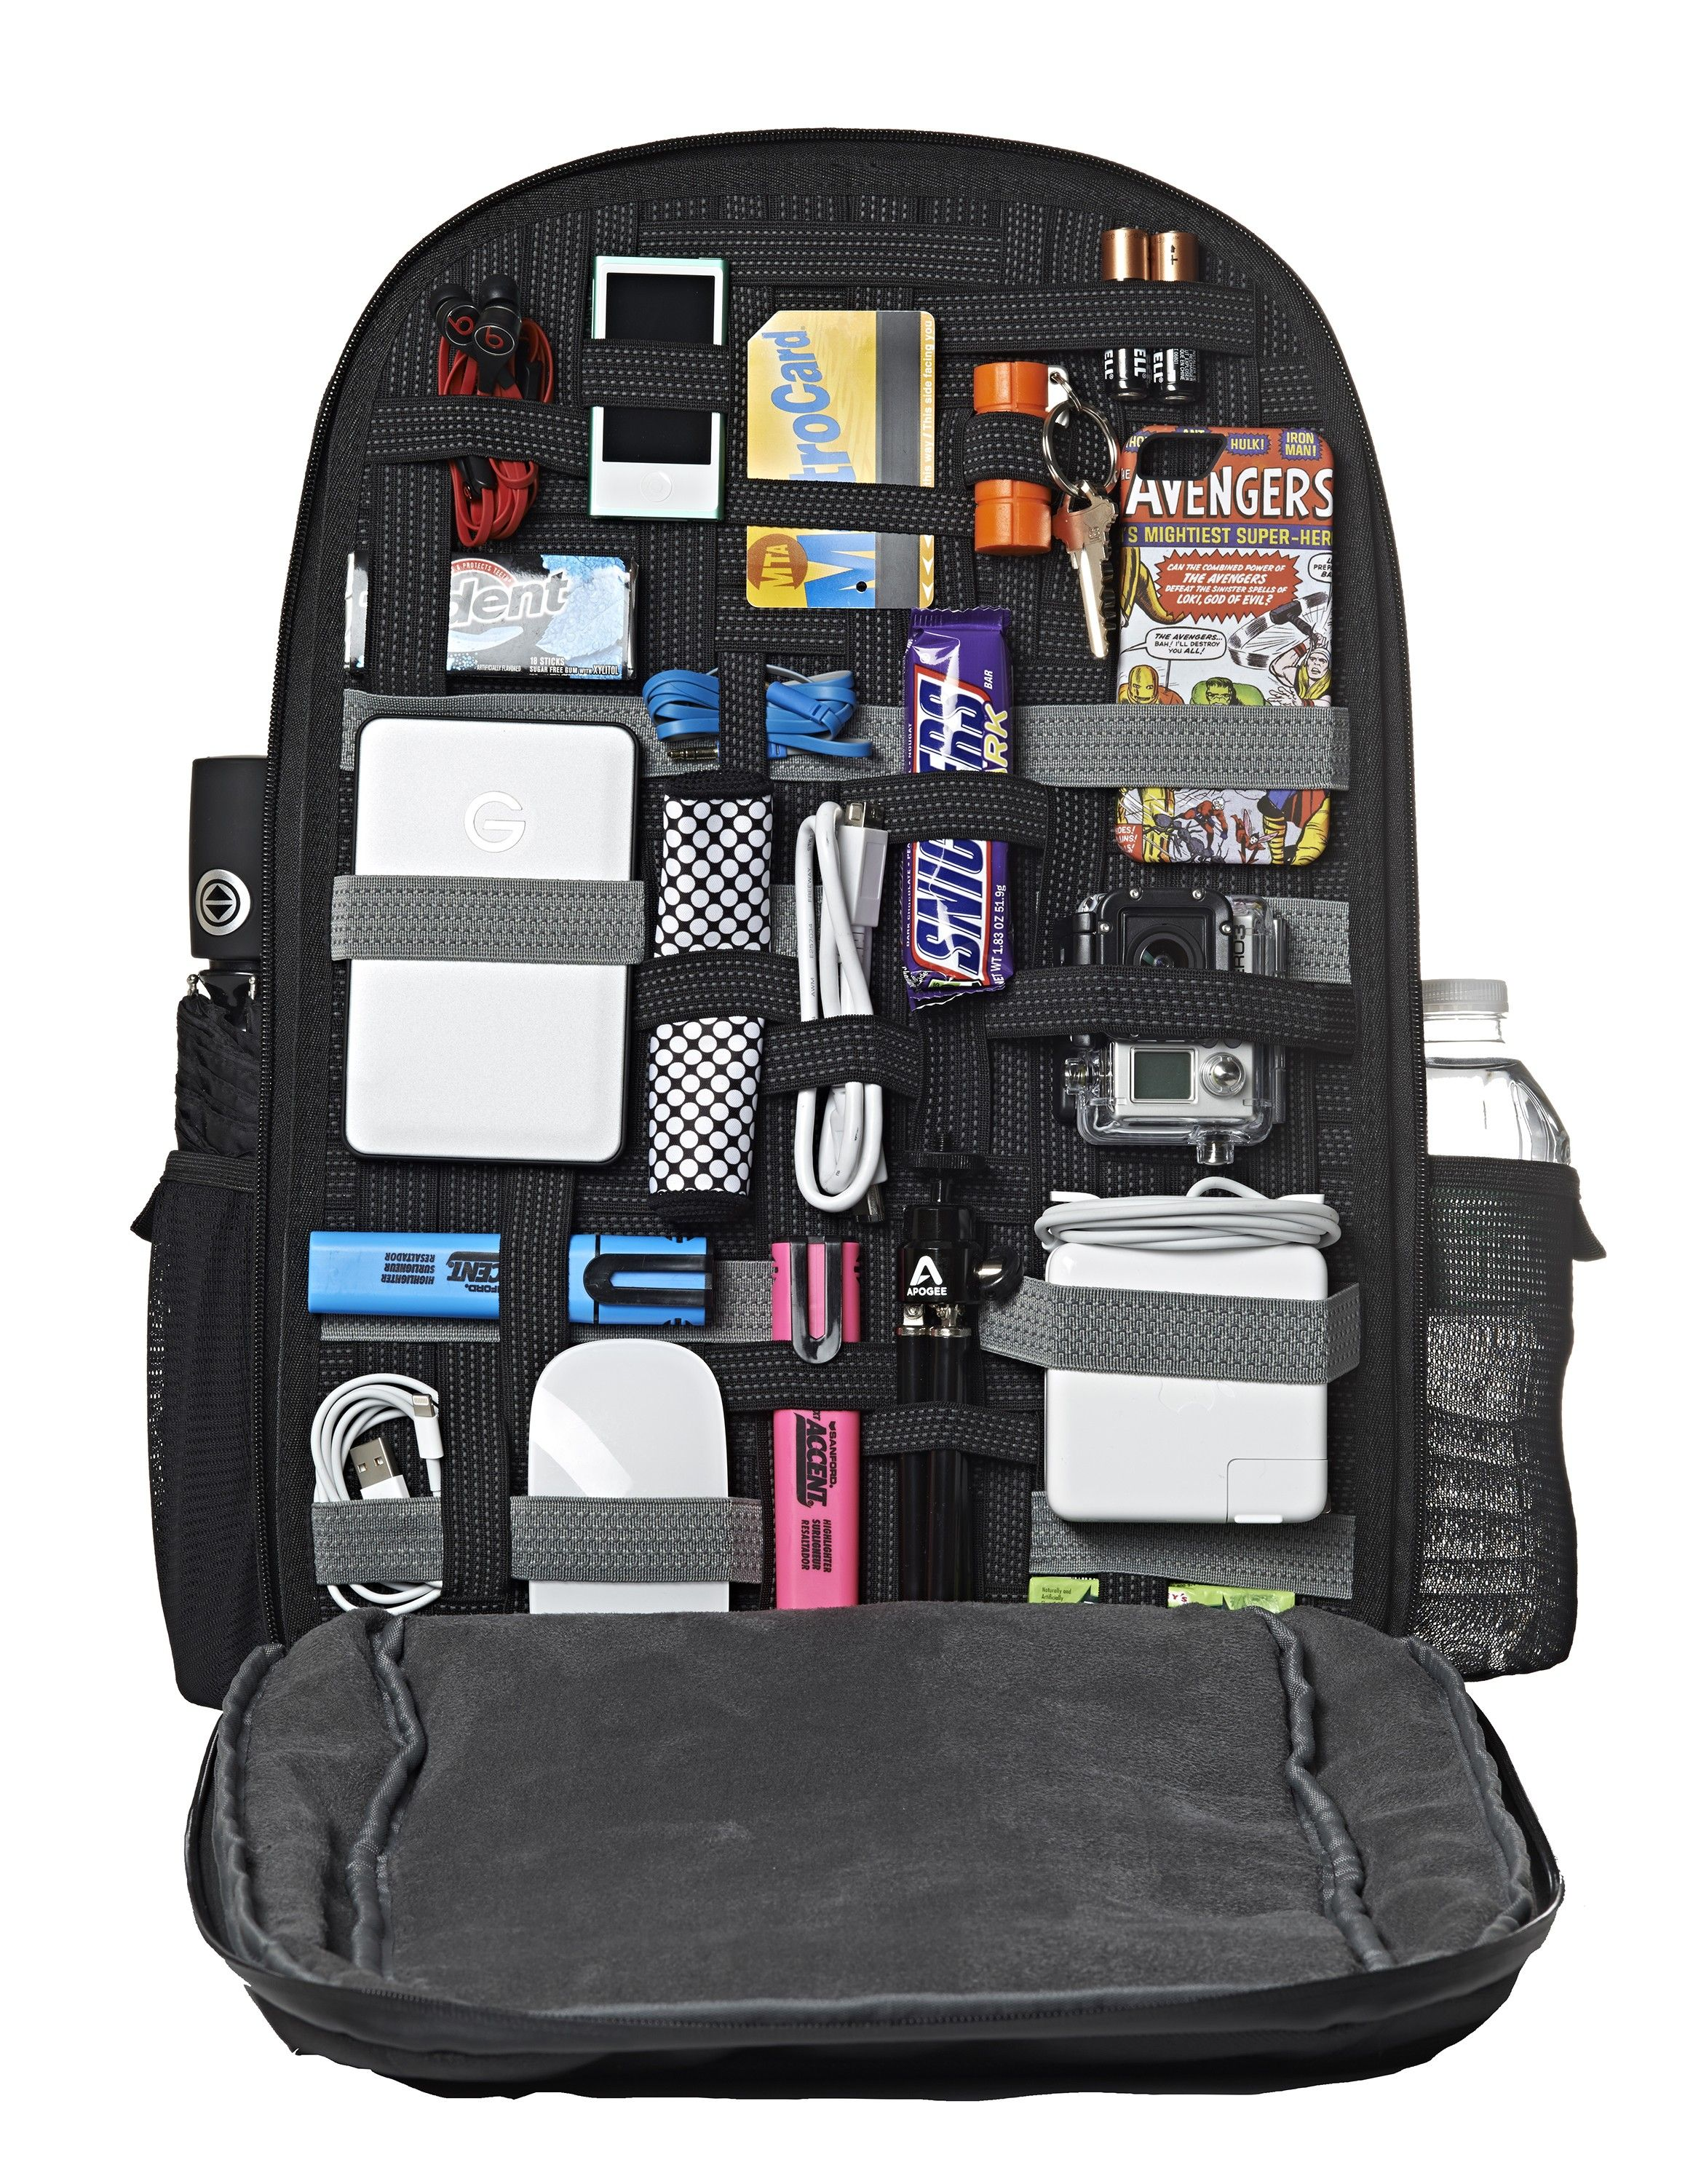 slim xl 17 backpack up to 17 laptop grid it pockets